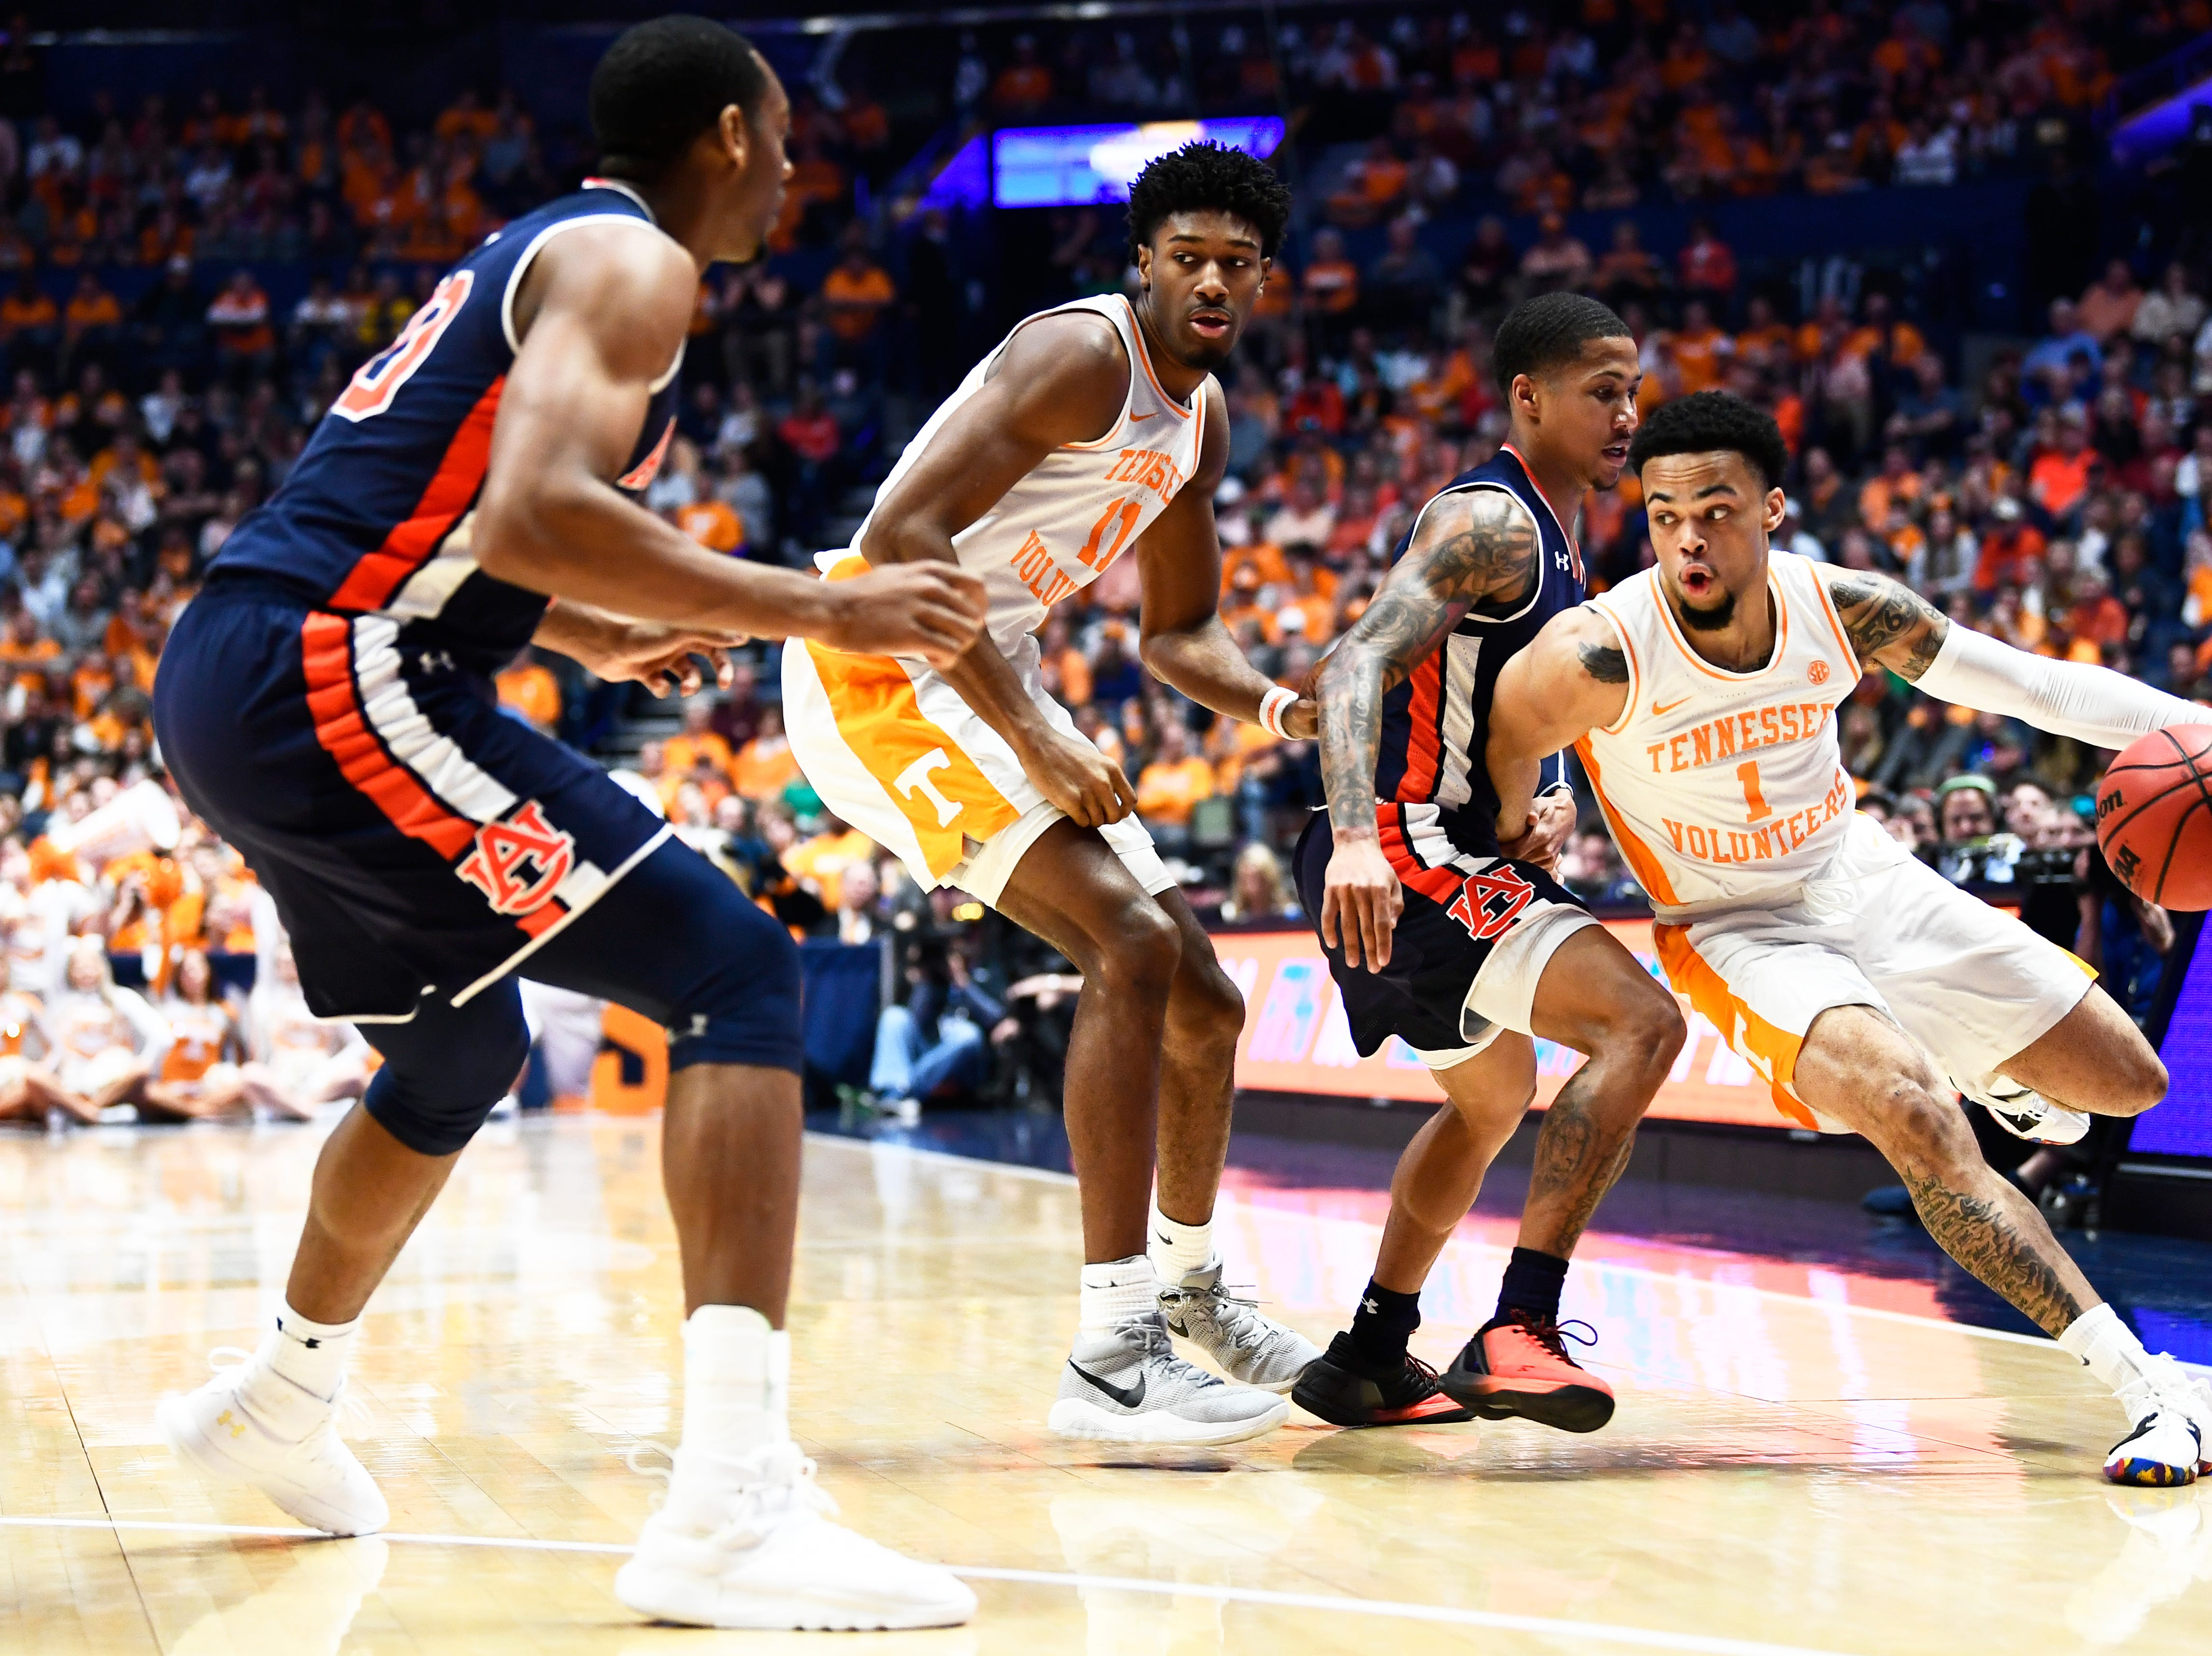 Tennessee guard Lamonte Turner (1) drives towards the basket during the first half of the SEC Men's Basketball Tournament championship game at Bridgestone Arena in Nashville, Tenn., Sunday, March 17, 2019.